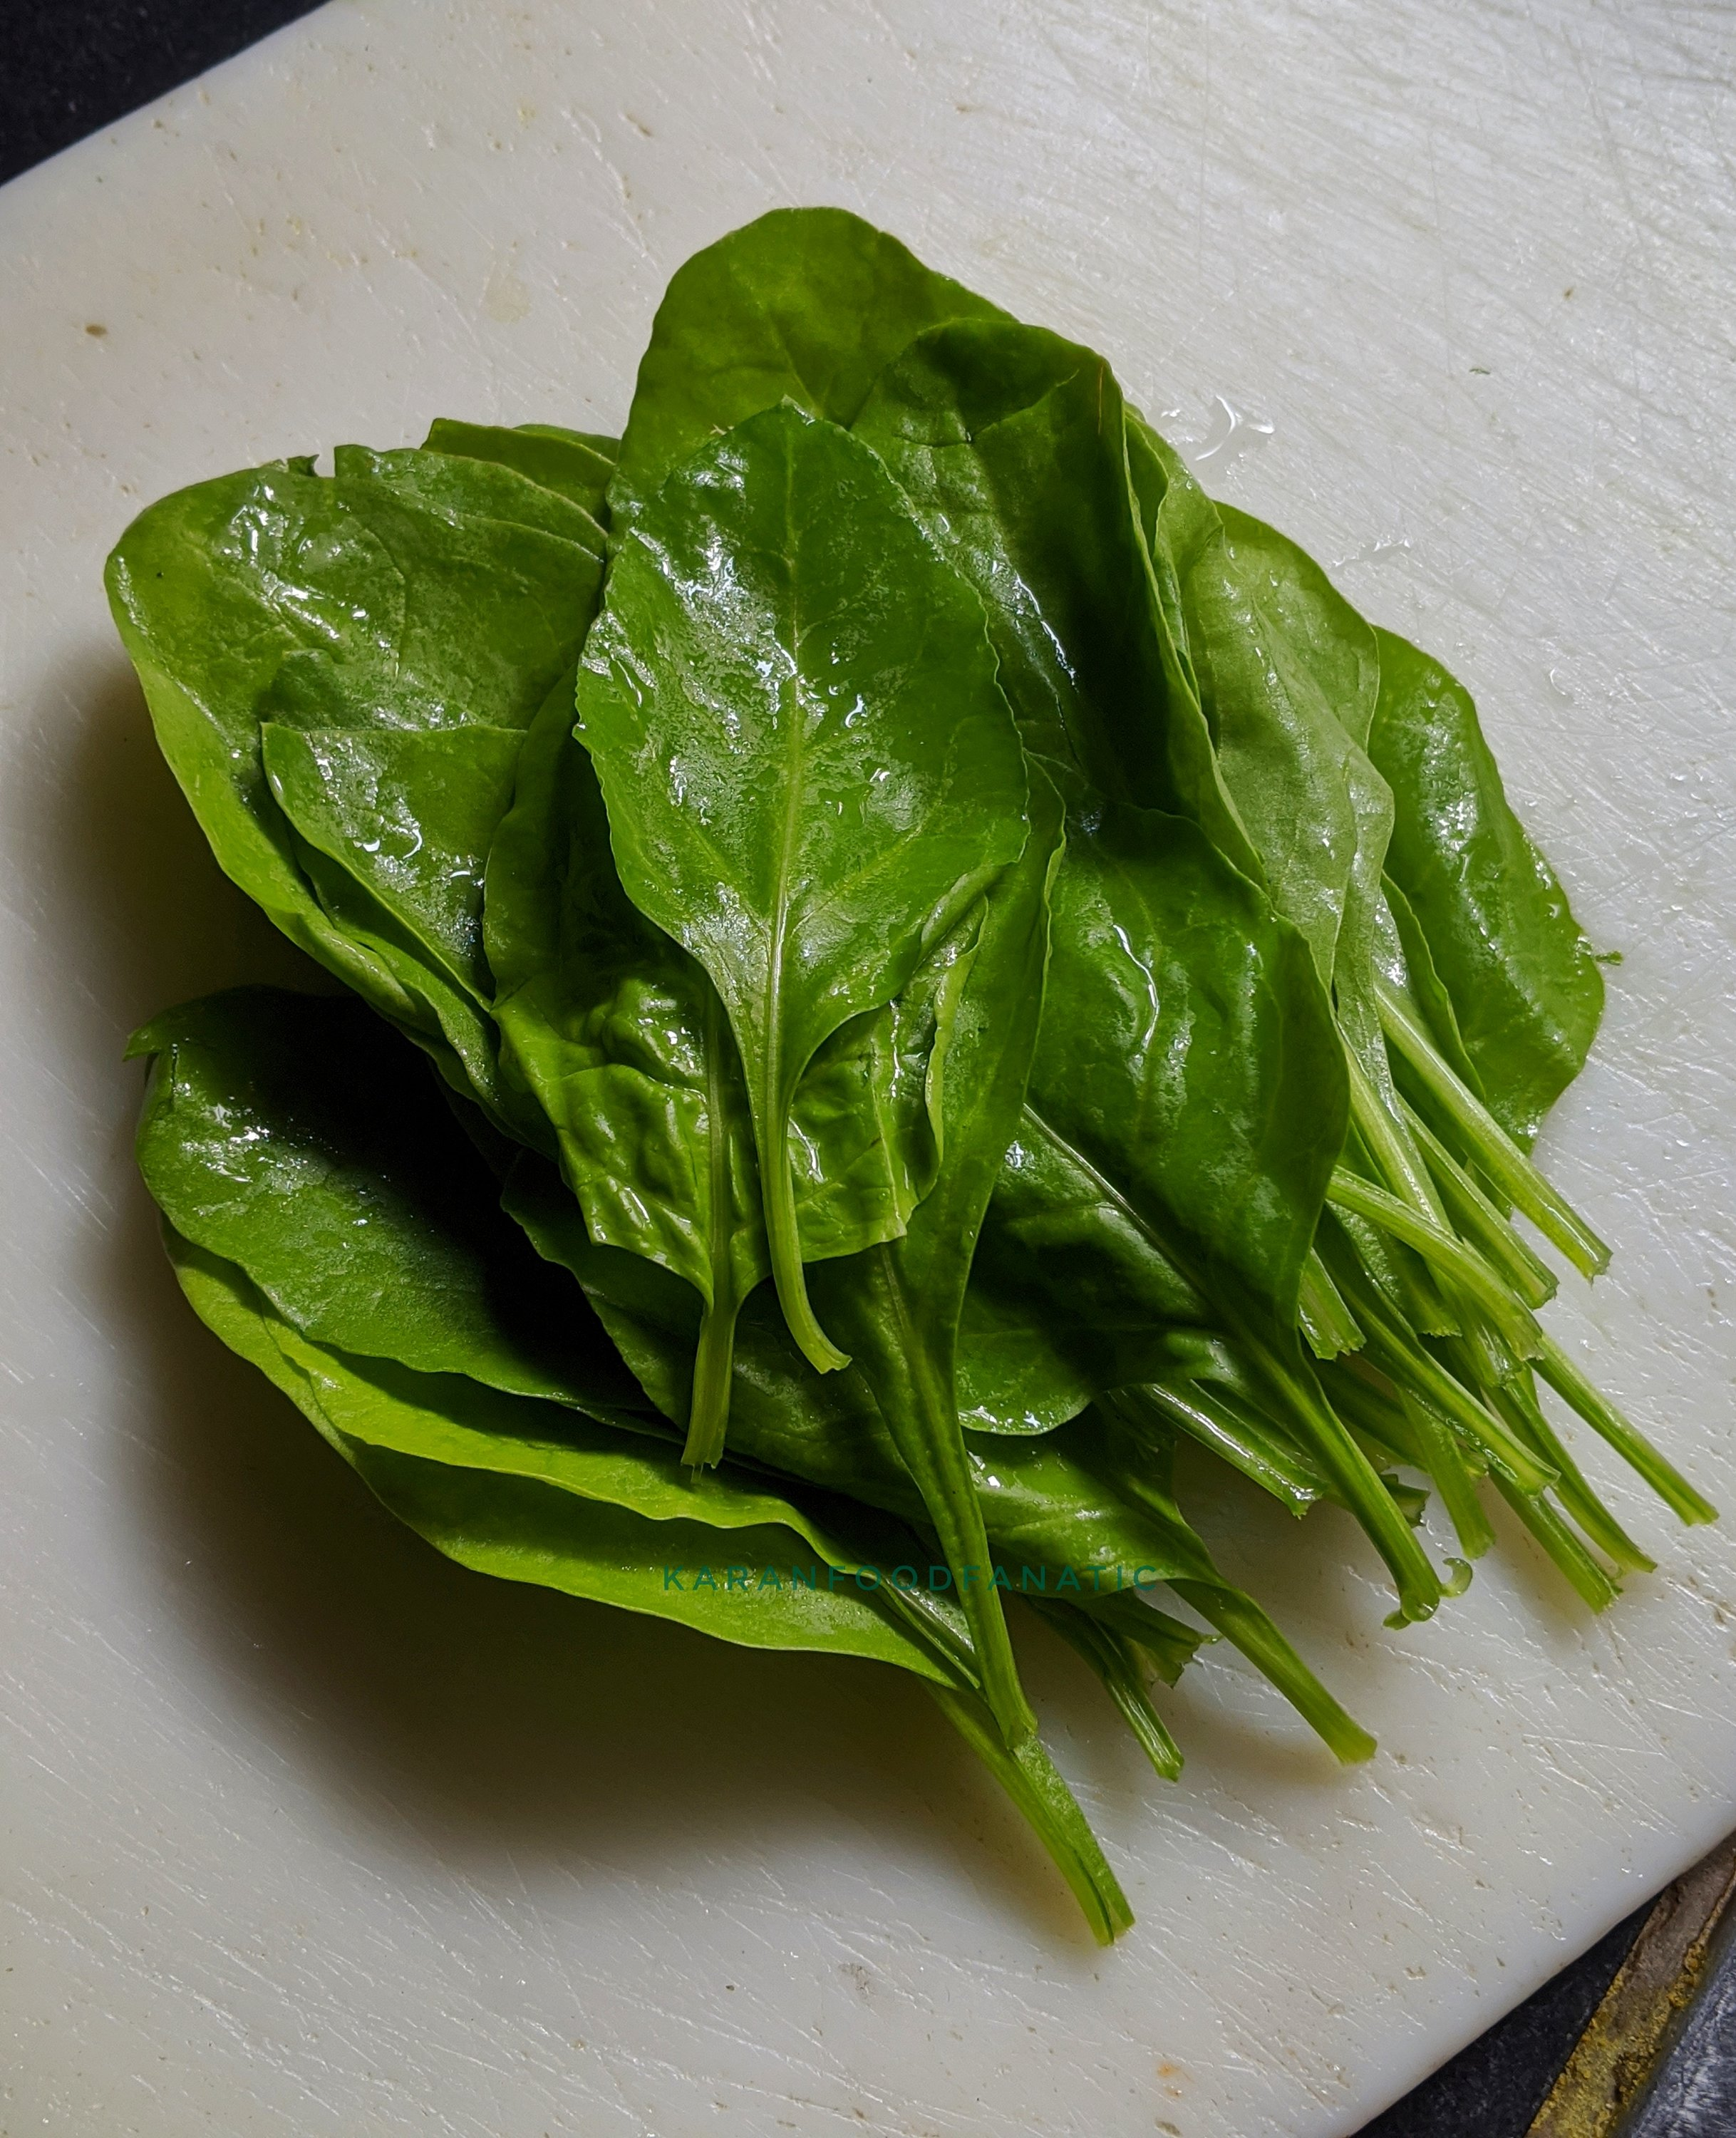 Wash and clean spinach leaves